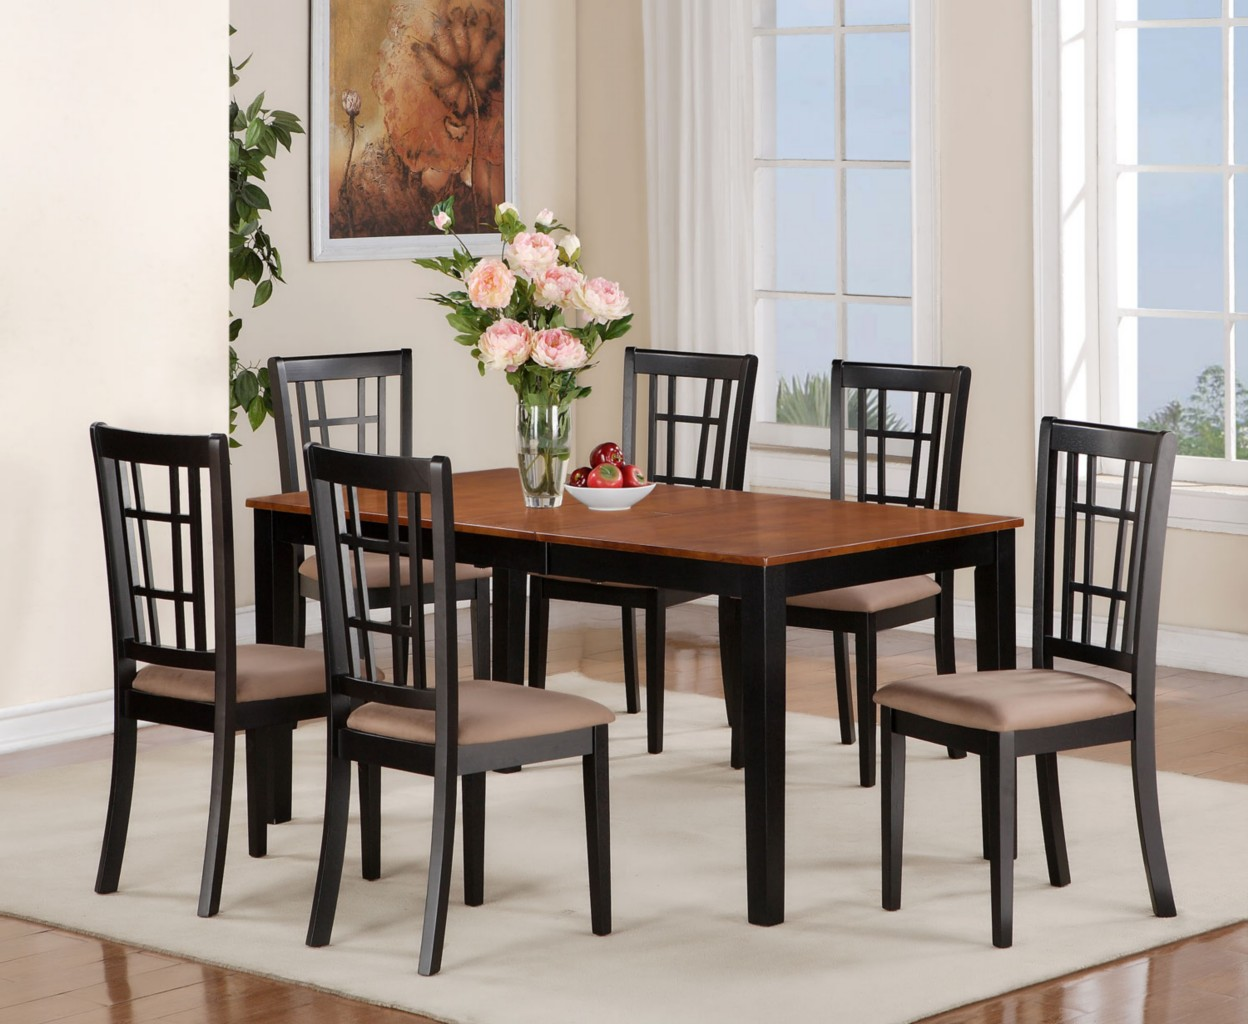 5pc dinette kitchen dining set rectangular table 4 chairs in black cherry ebay - Rectangle kitchen table sets ...